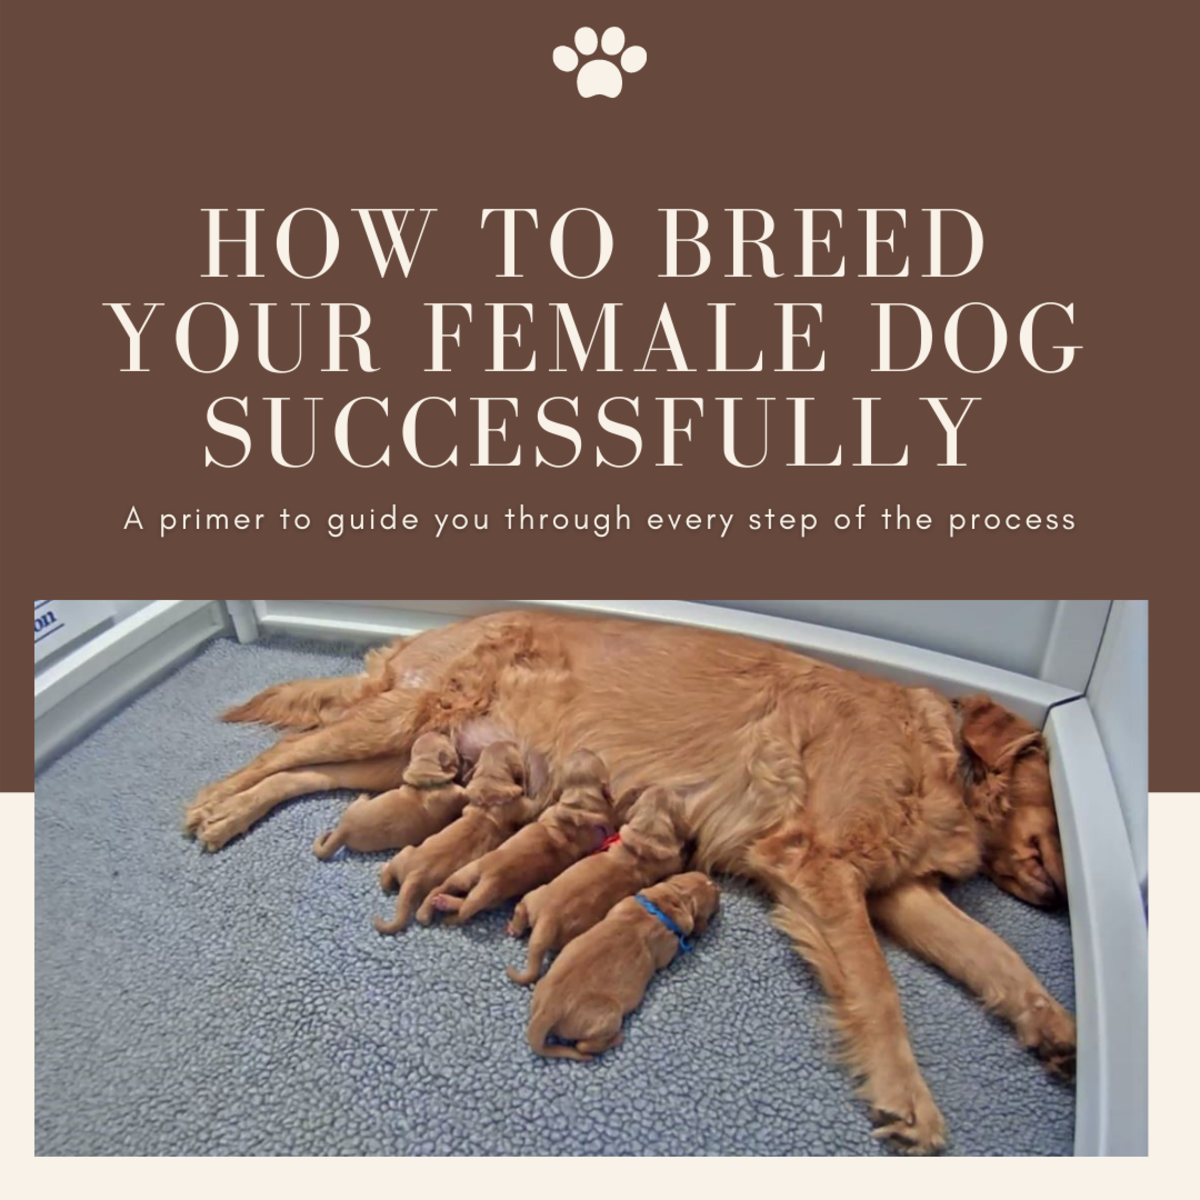 This article will help guide you through every part of the breeding process for your female dog.